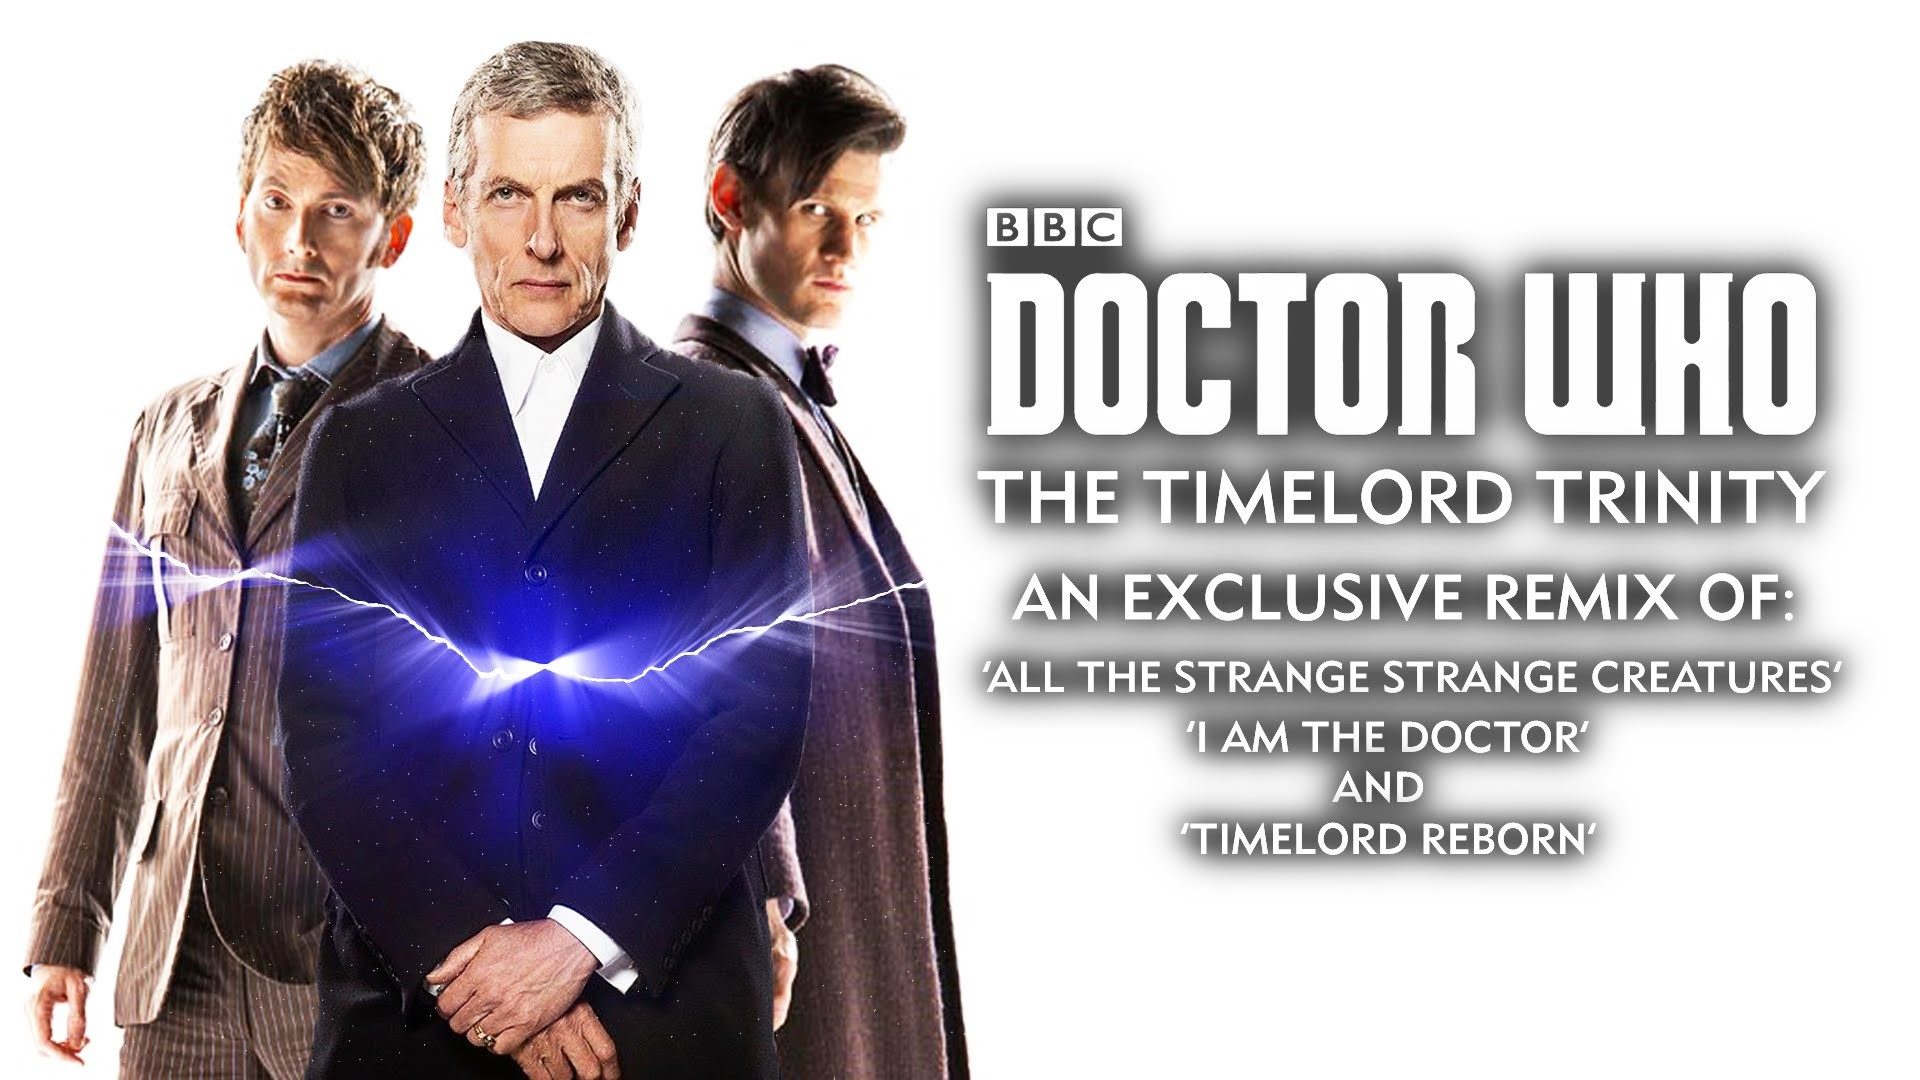 1920x1080 Doctor Who The Timelord Trinity - 10th, 11th and 12th Doctors' Themes -  Whovian Mashup Mix!